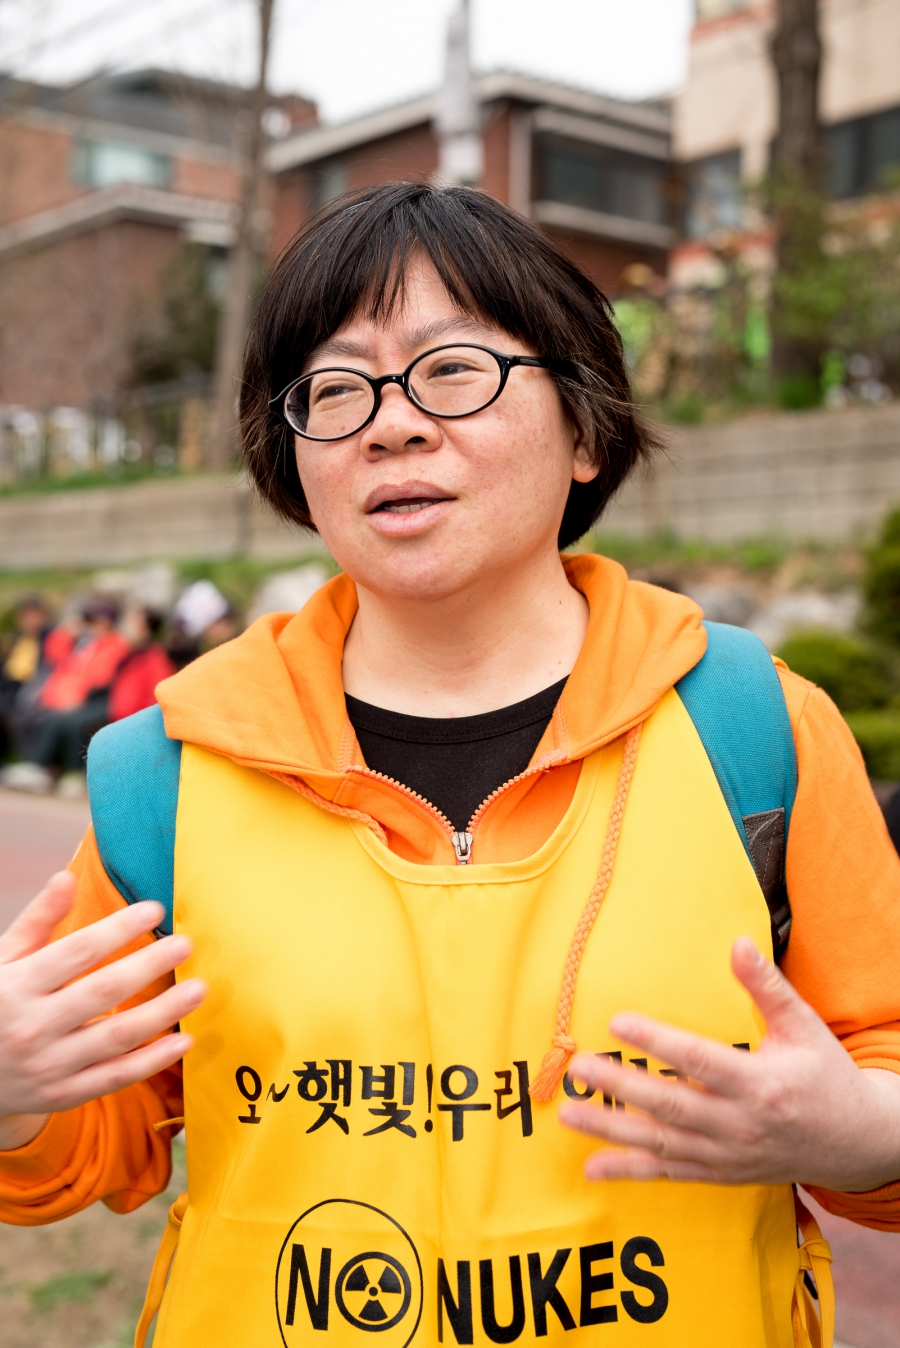 Kim Hyun-choo, who also goes by her Christian name of Maria, says the anti-nuclear campaign wants the South Korean government to stop building new nuclear plants, and close the outdated ones.